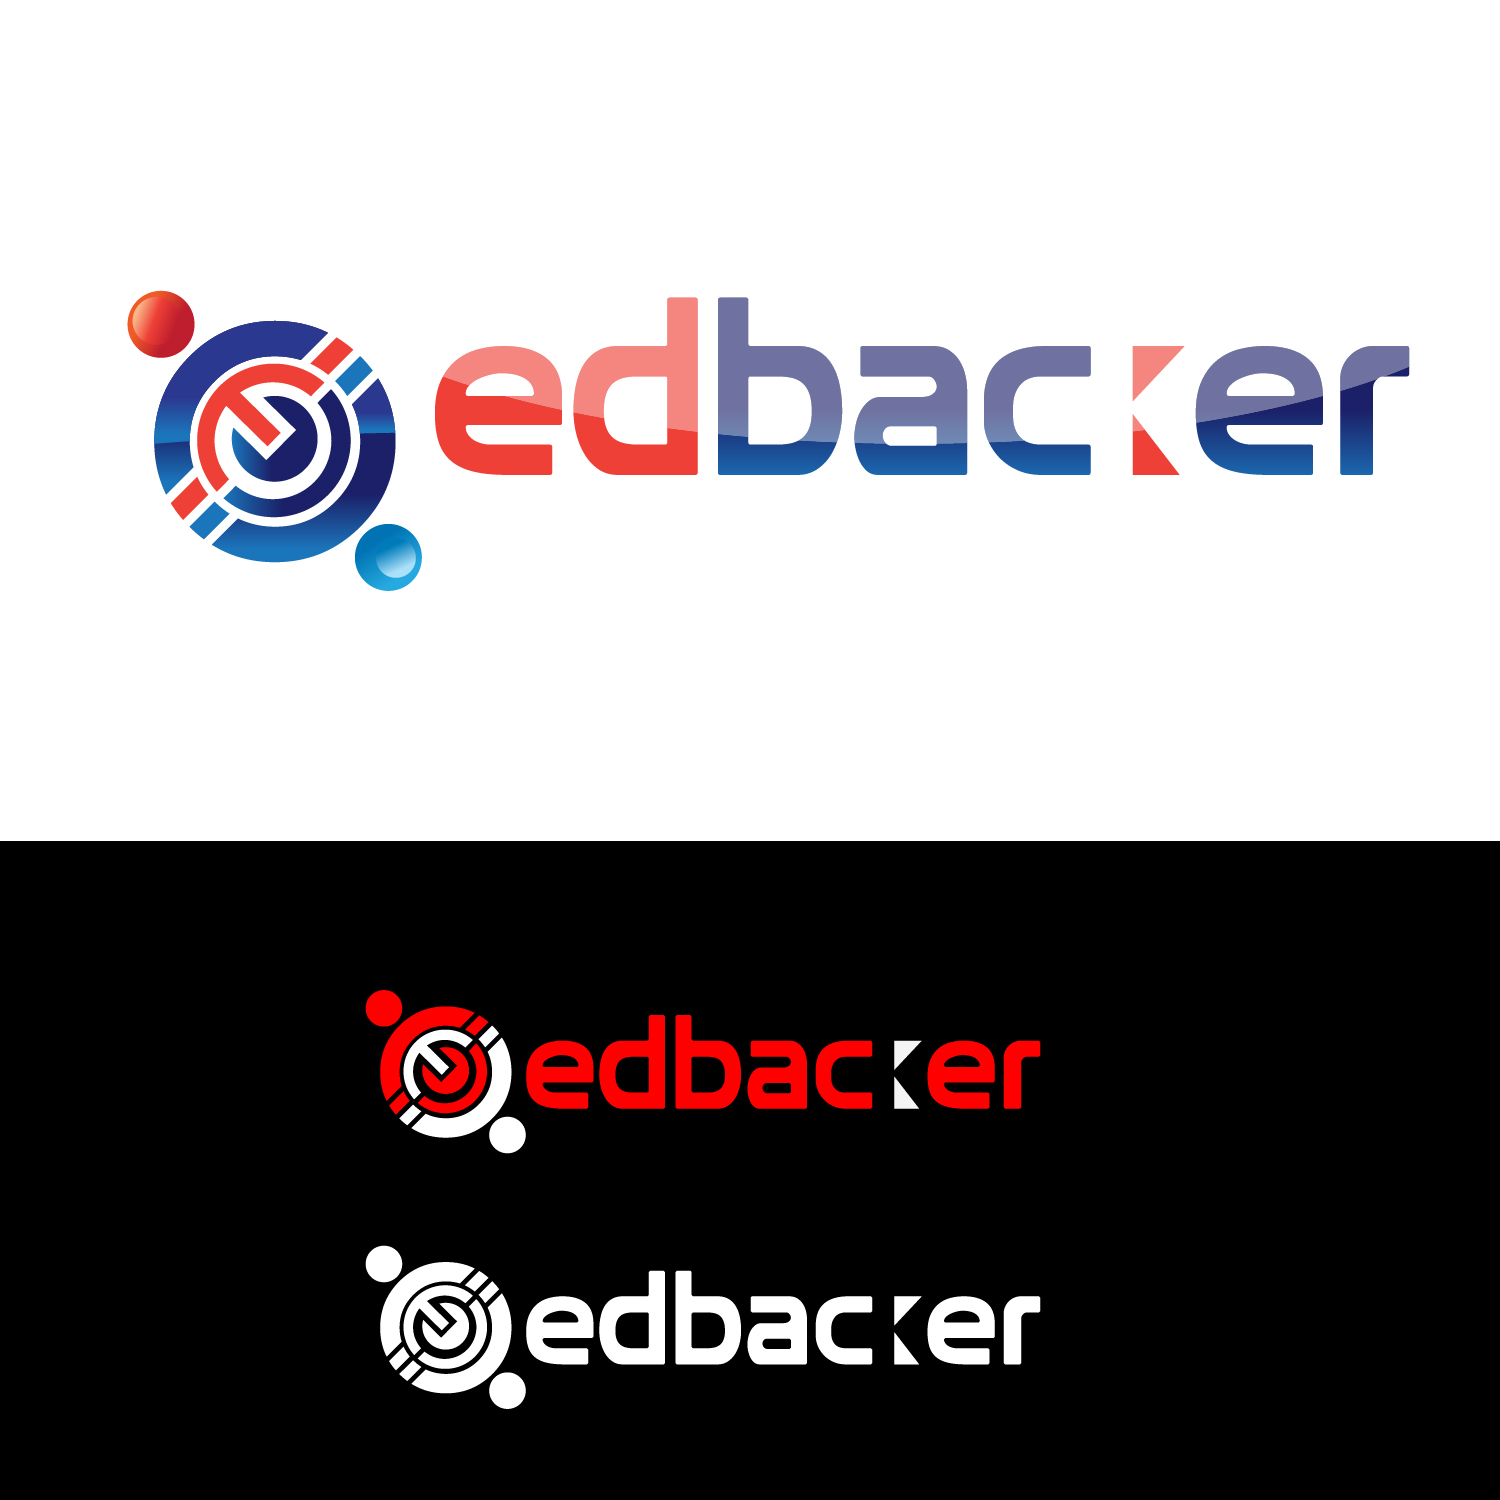 Logo Design by lagalag - Entry No. 136 in the Logo Design Contest New Logo Design for edbacker.